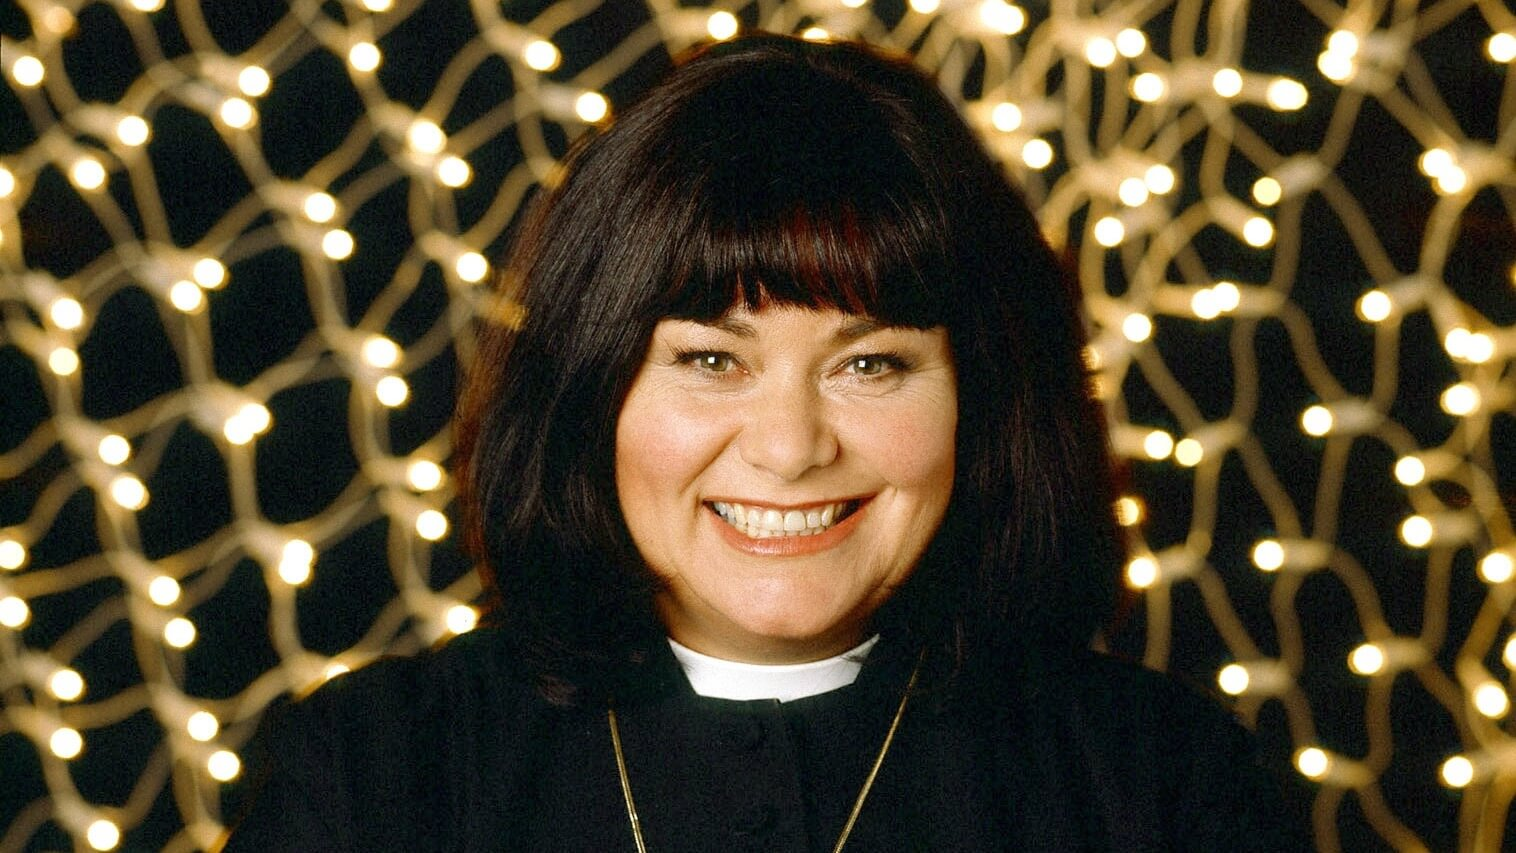 Tiger to make Vicar of Dibley in Lockdown for BBC